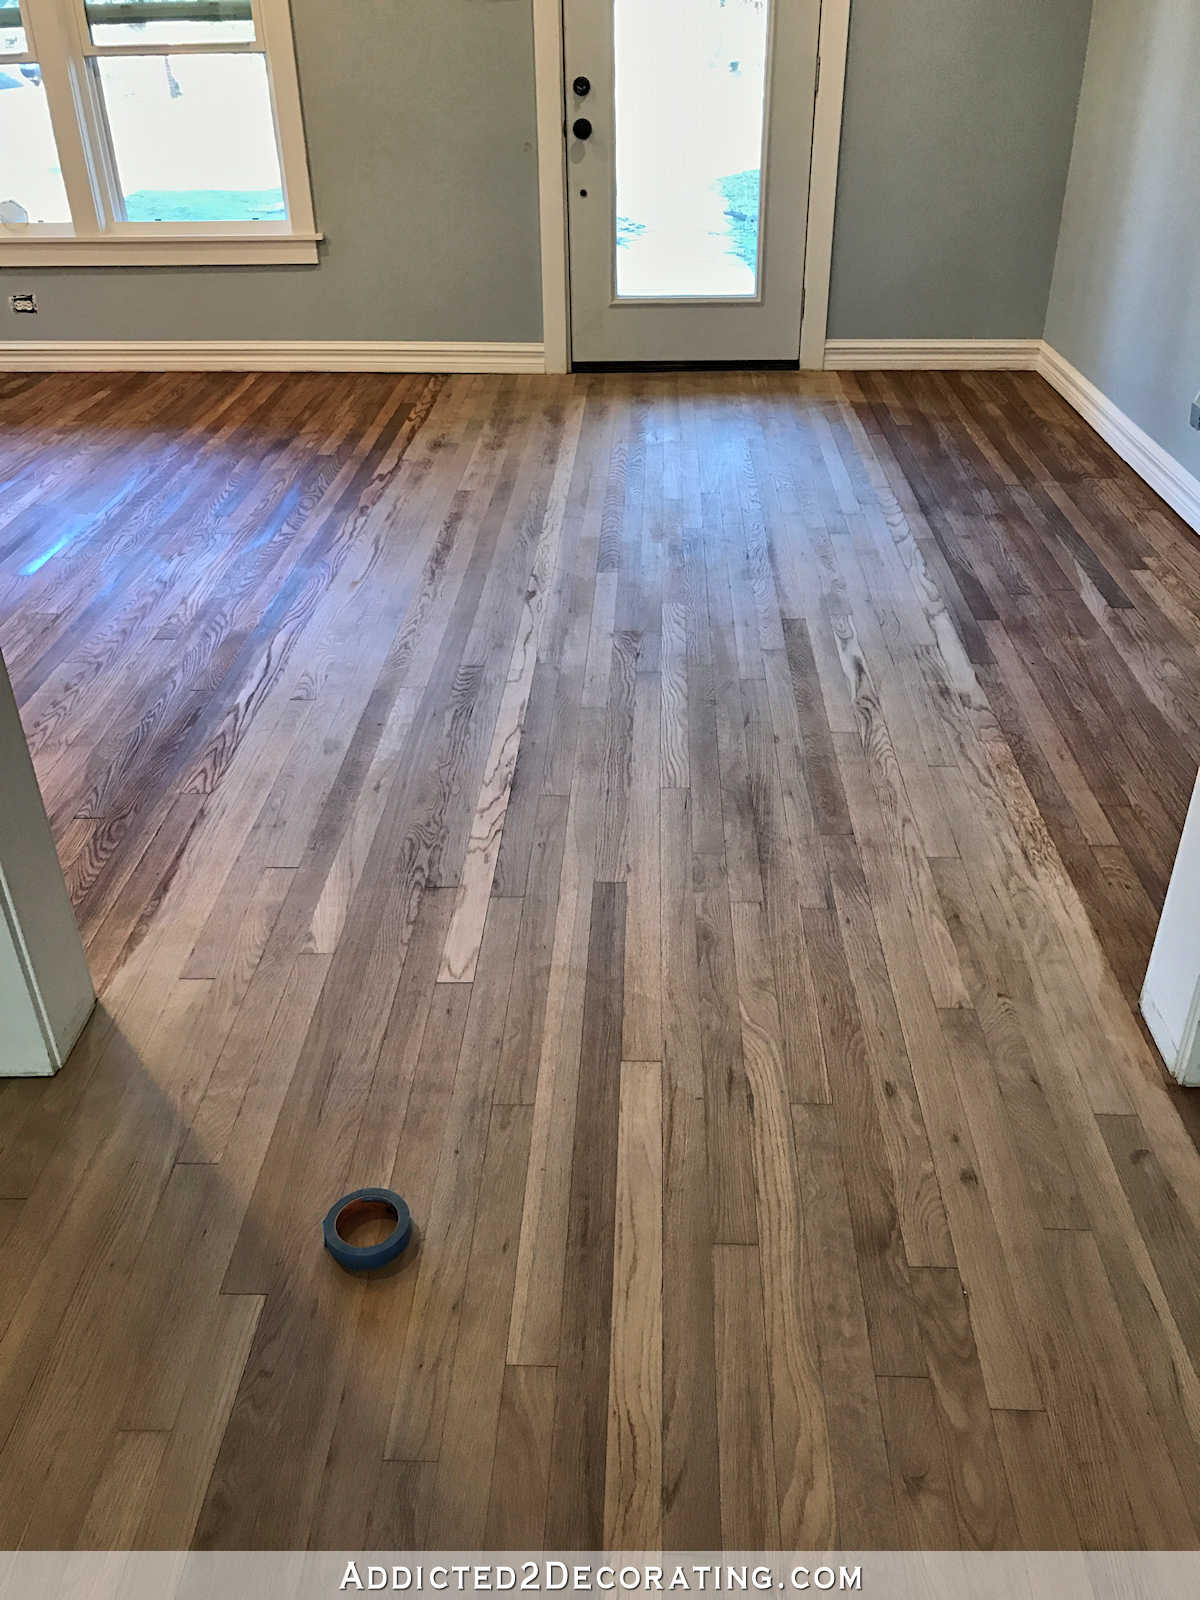 restaining hardwood floors diy of adventures in staining my red oak hardwood floors products process in staining red oak hardwood floors 4 entryway and living room wood conditioner